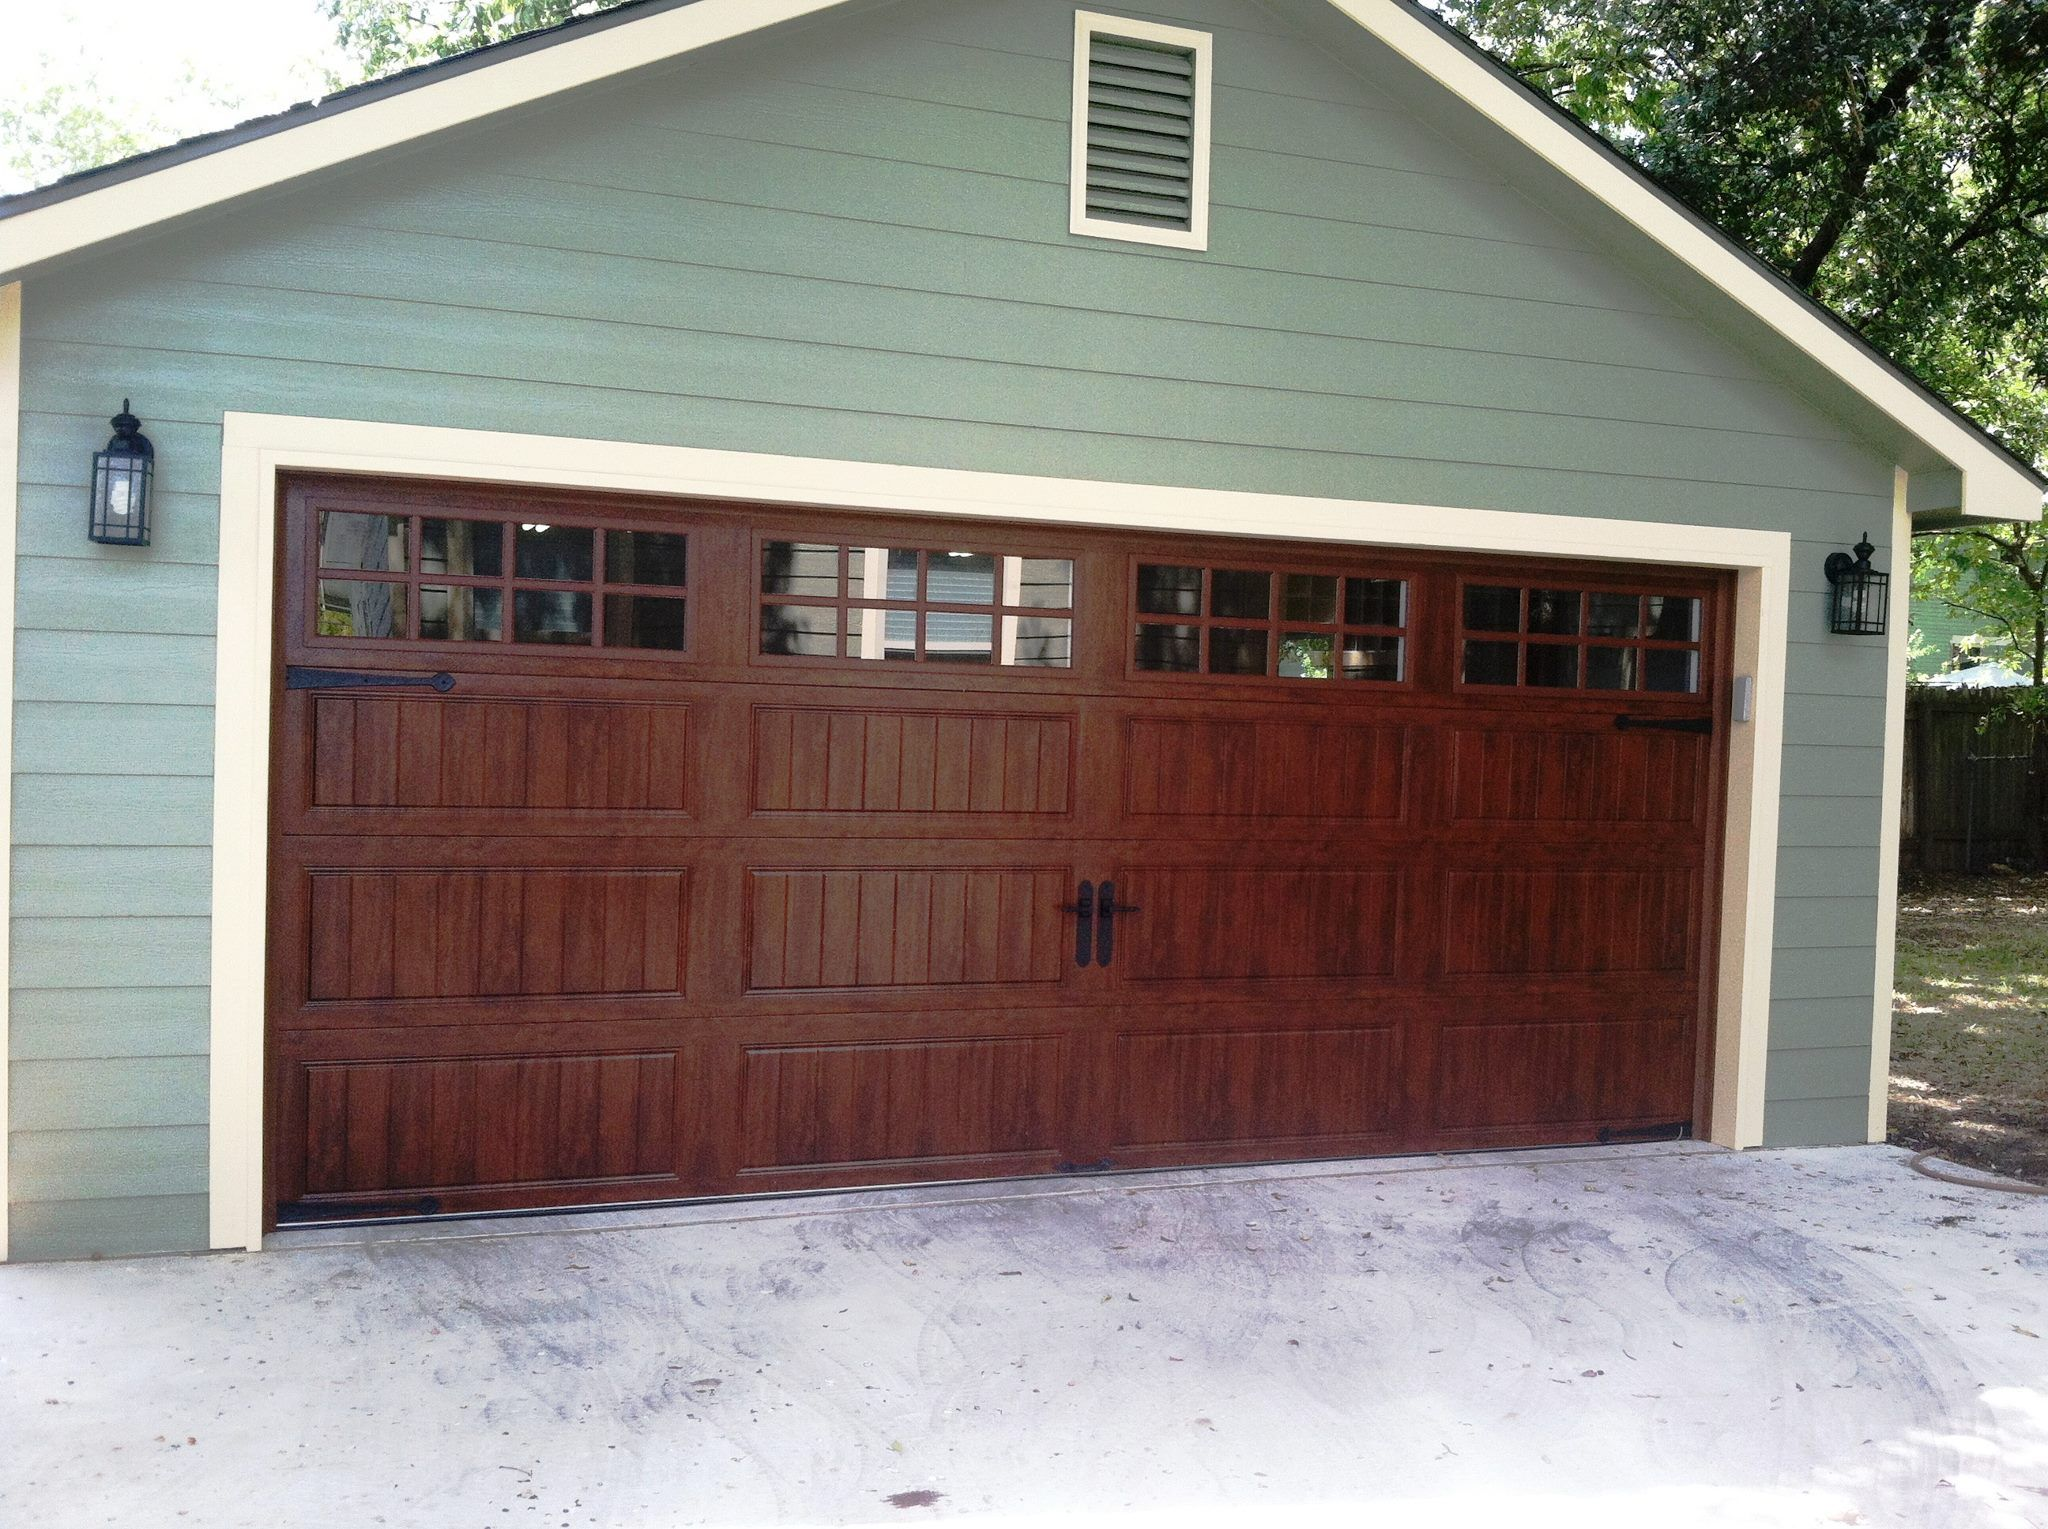 Clopay gallery collection grooved panel steel garage door with ultra grain finish long panel - Wood exterior paint collection ...